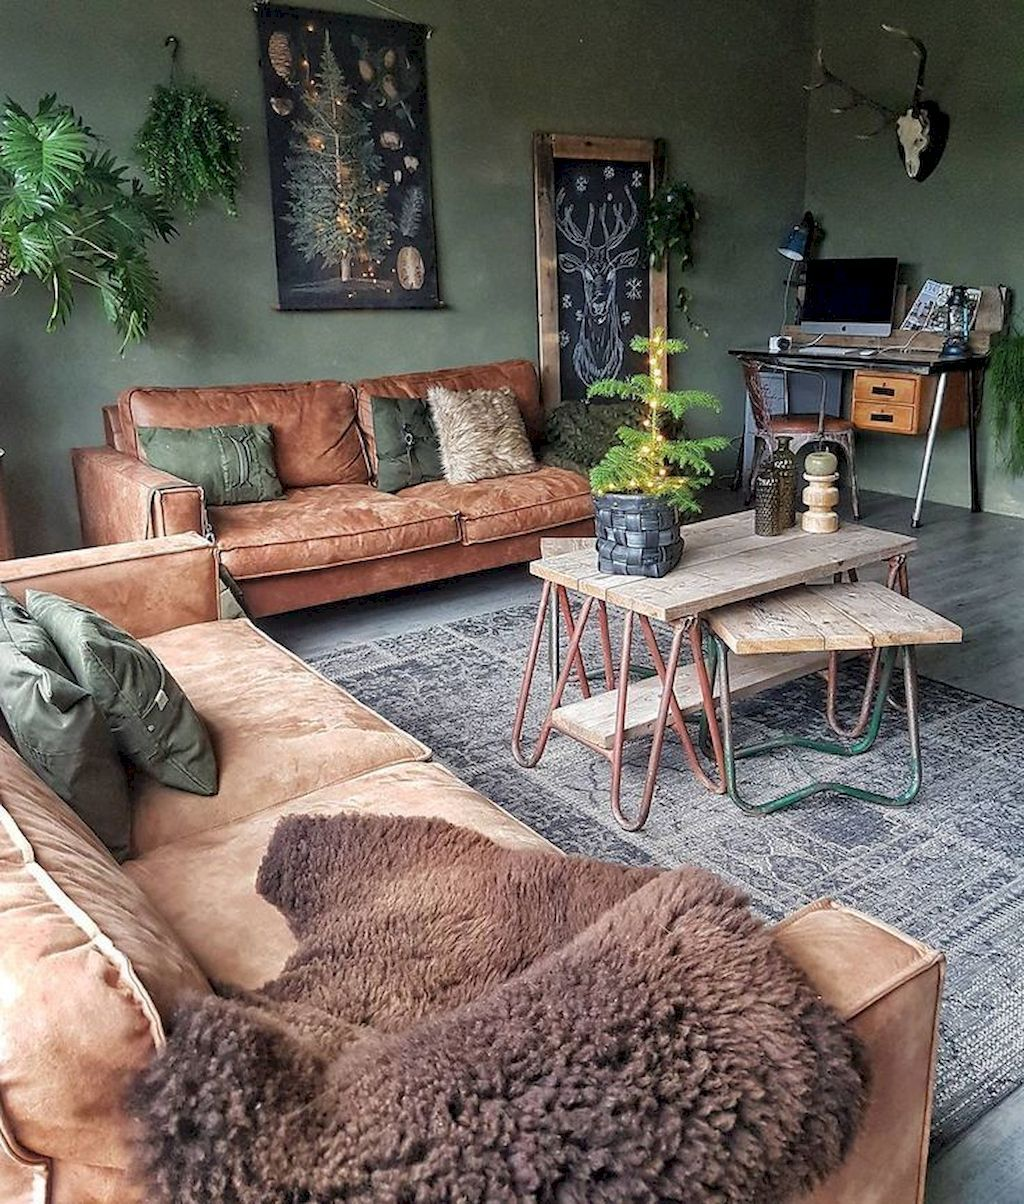 90 Modern Bohemian Living Room Inspiration Ideas images